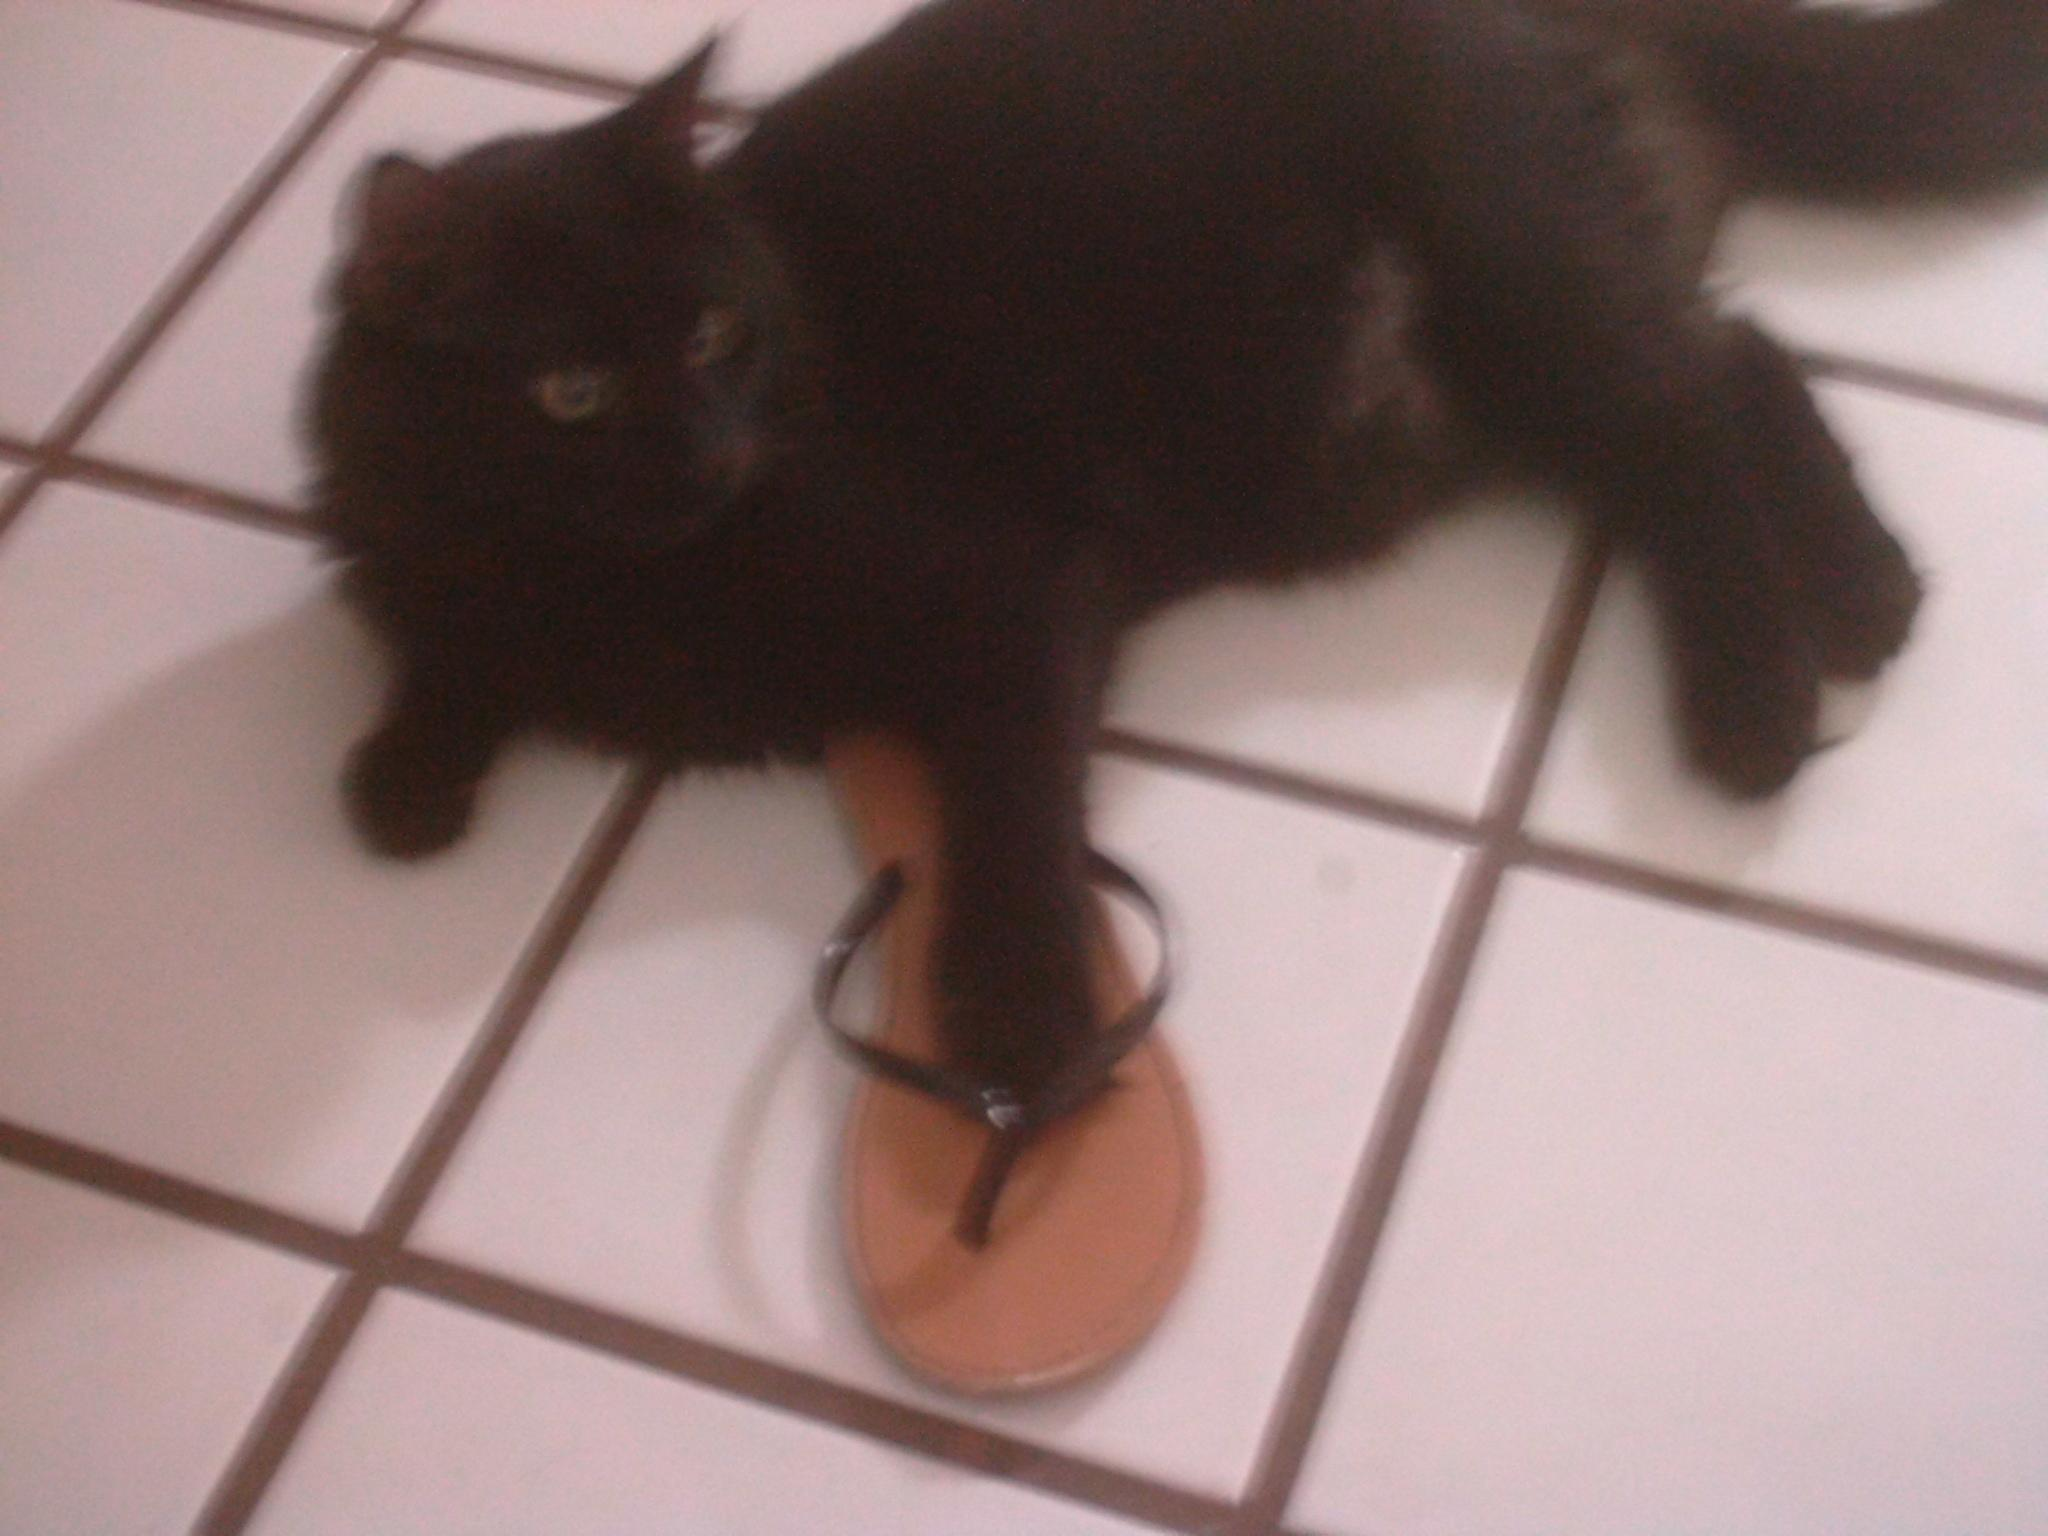 Judging from this picture, do you think cats like wearing sandals?